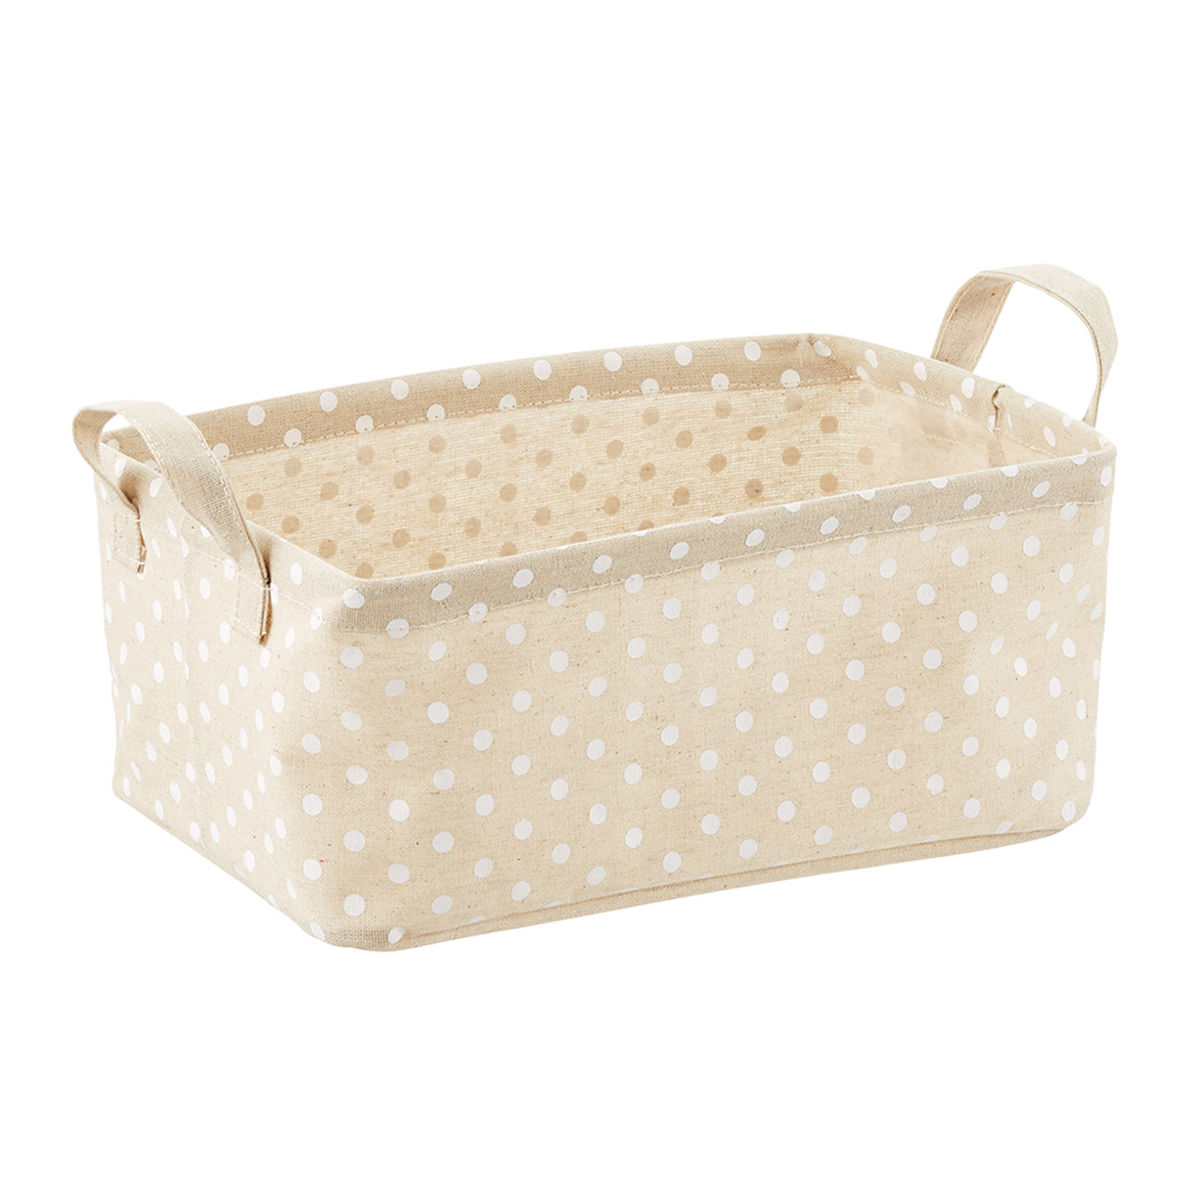 White Dots Fabric Storage Bins with Handles